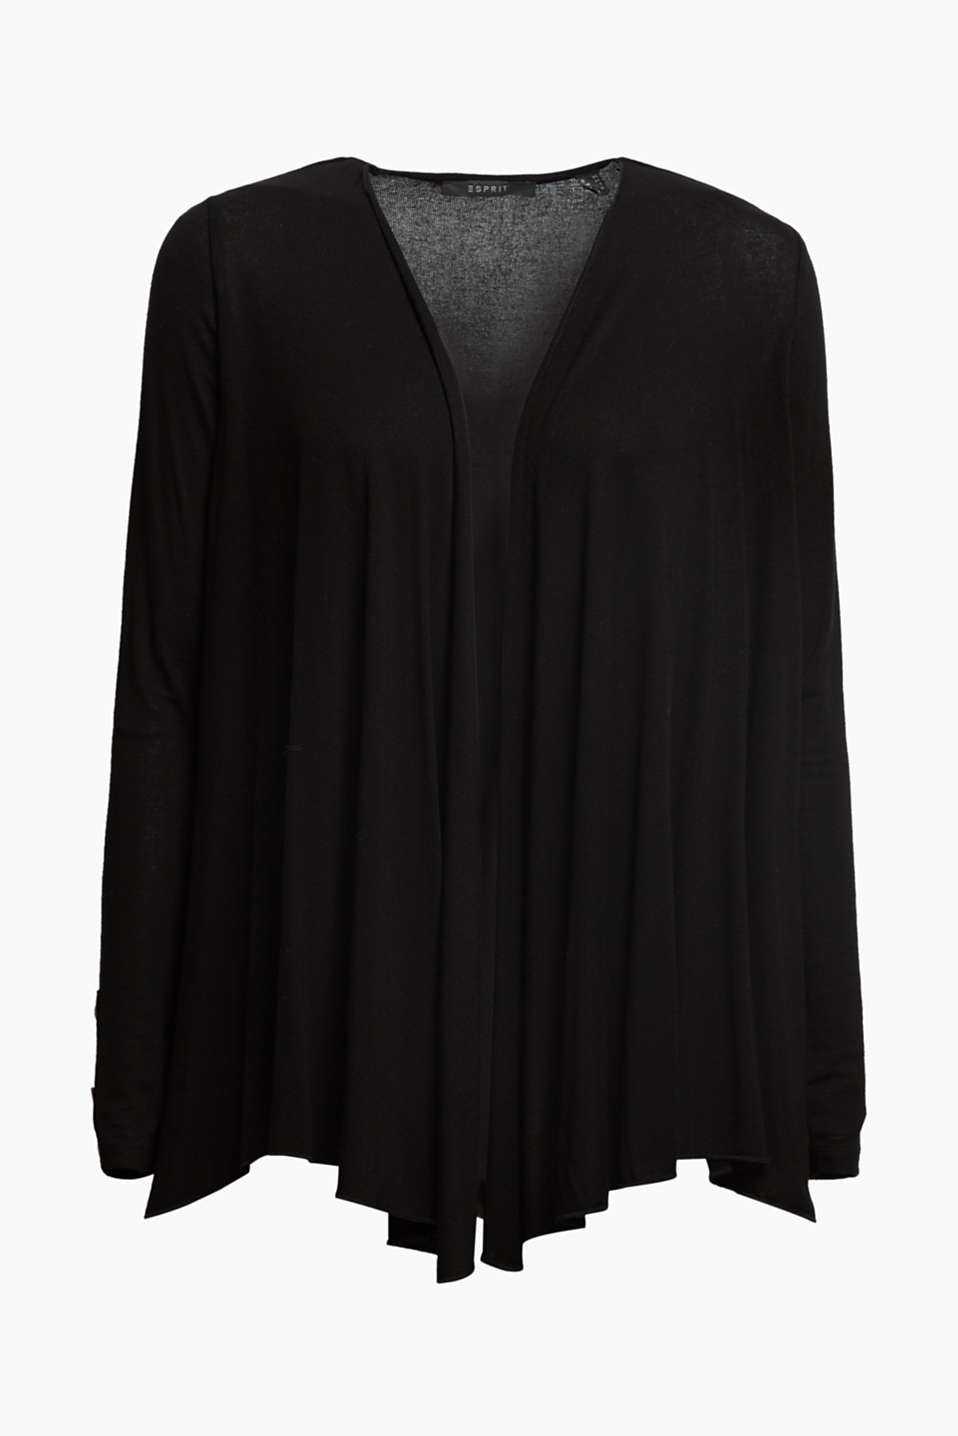 Flowing stretch jersey cardigan, BLACK, detail image number 6